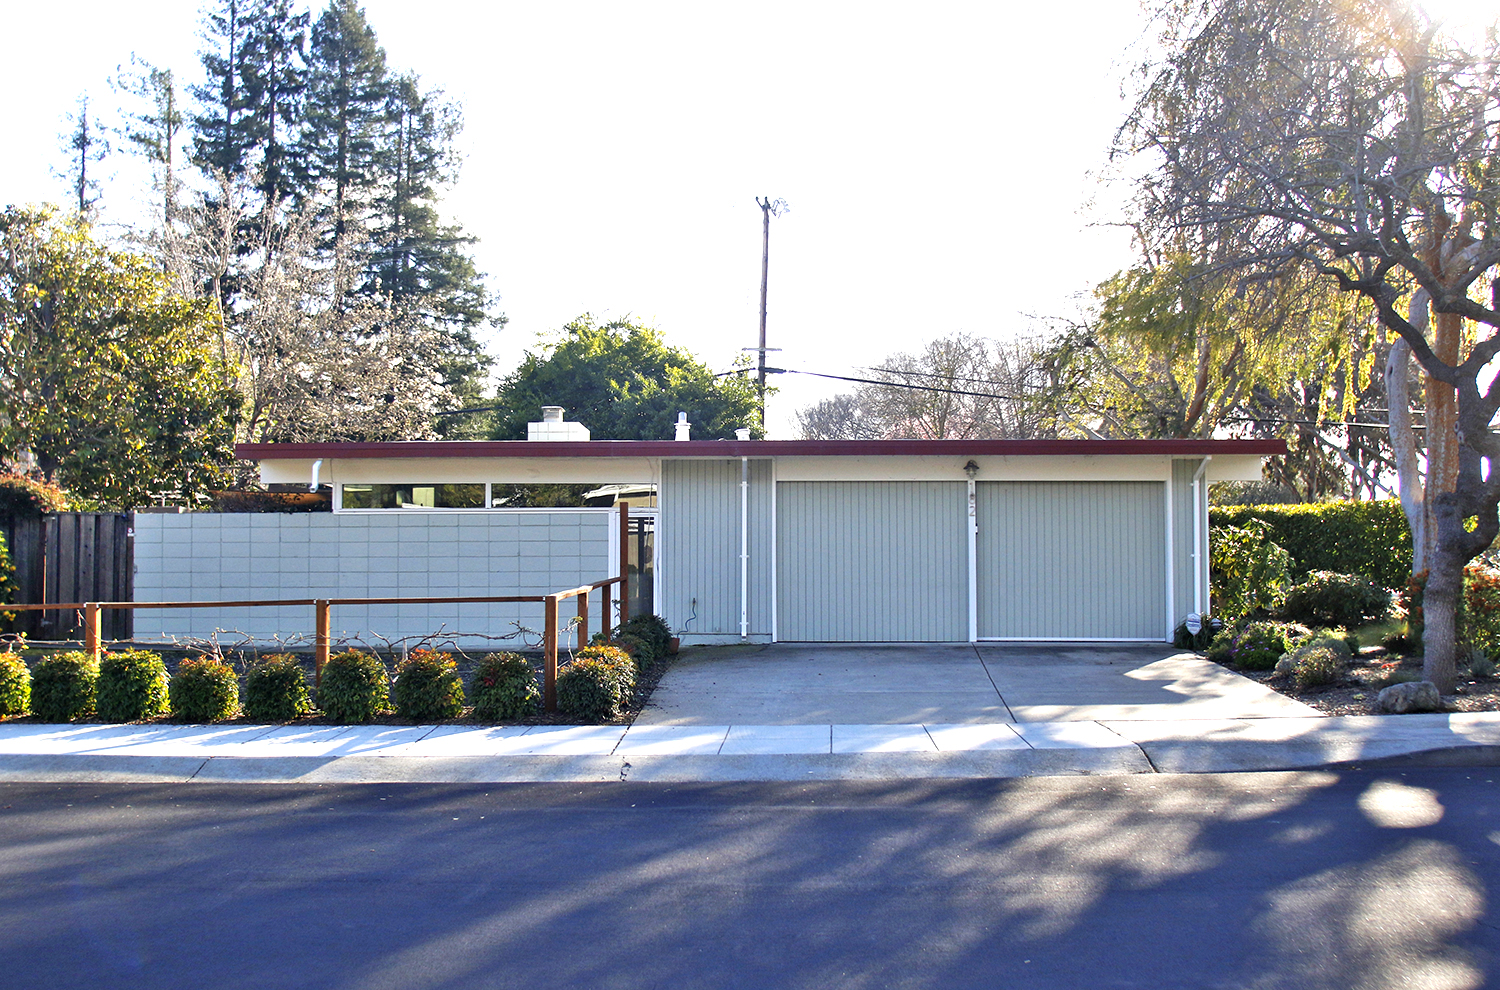 Built as affordable tract homes for the middle class during the 1950s to the 1970s, Eichler homes have now risen above $2 million.